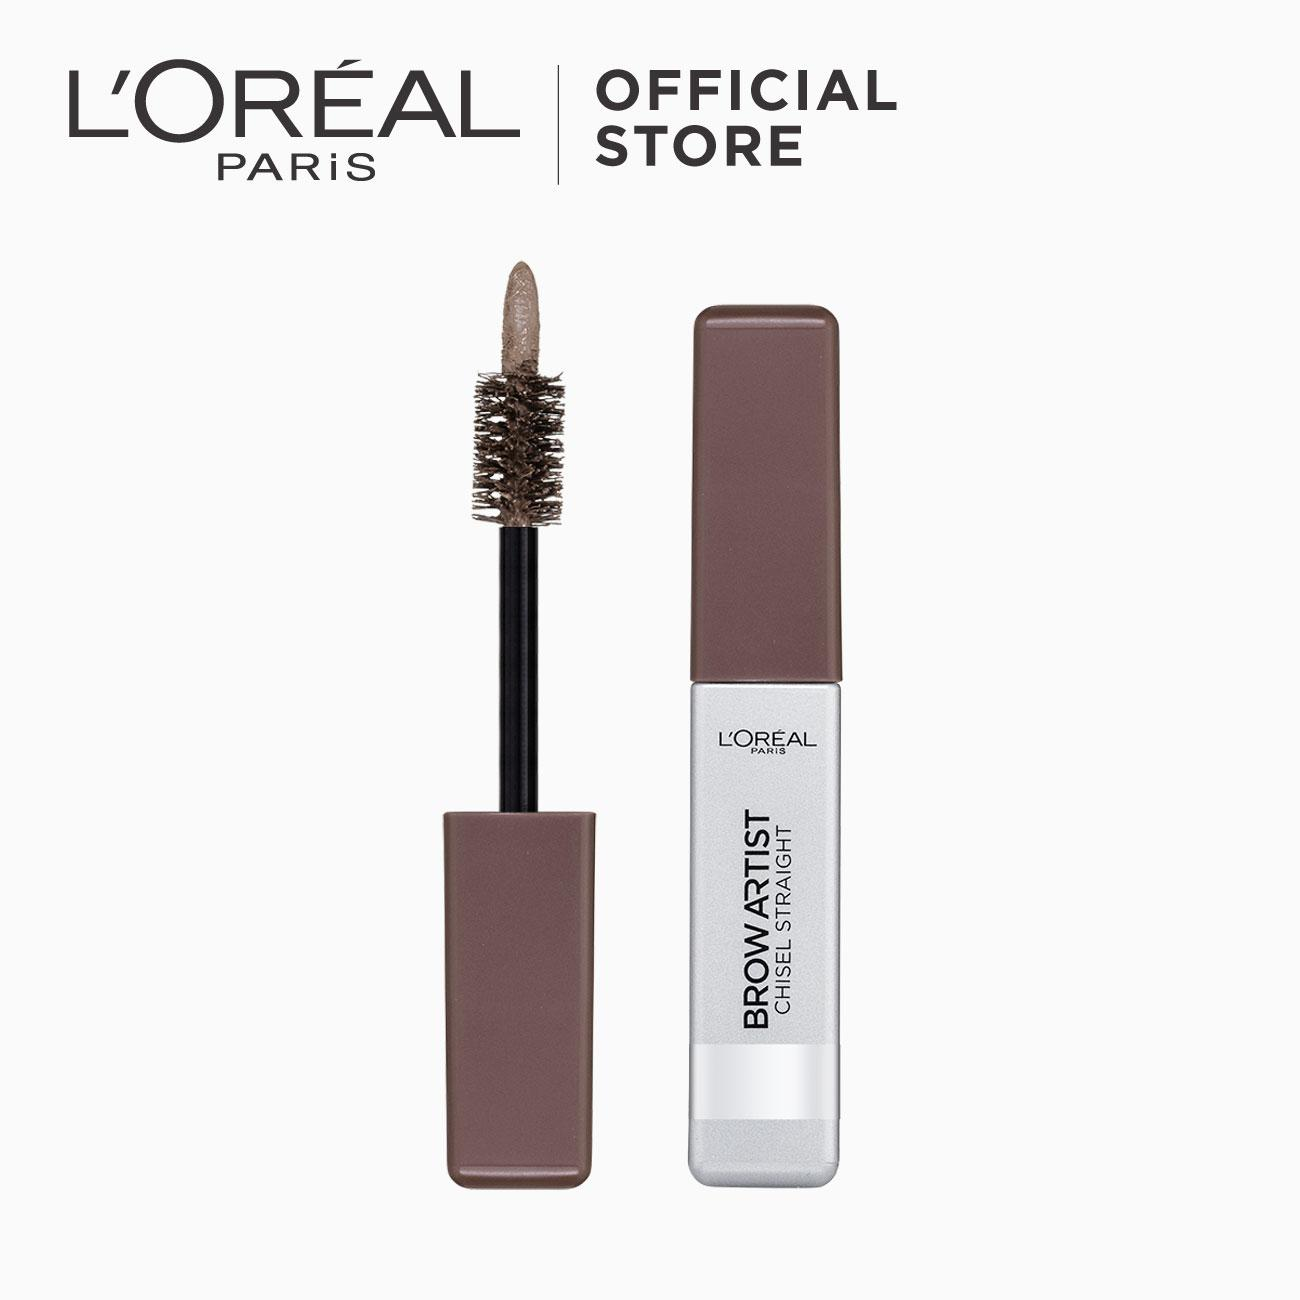 Chisel Mascara Straight Eyebrow Mascara - Light Brown by LOréal Paris Brow Artist Philippines